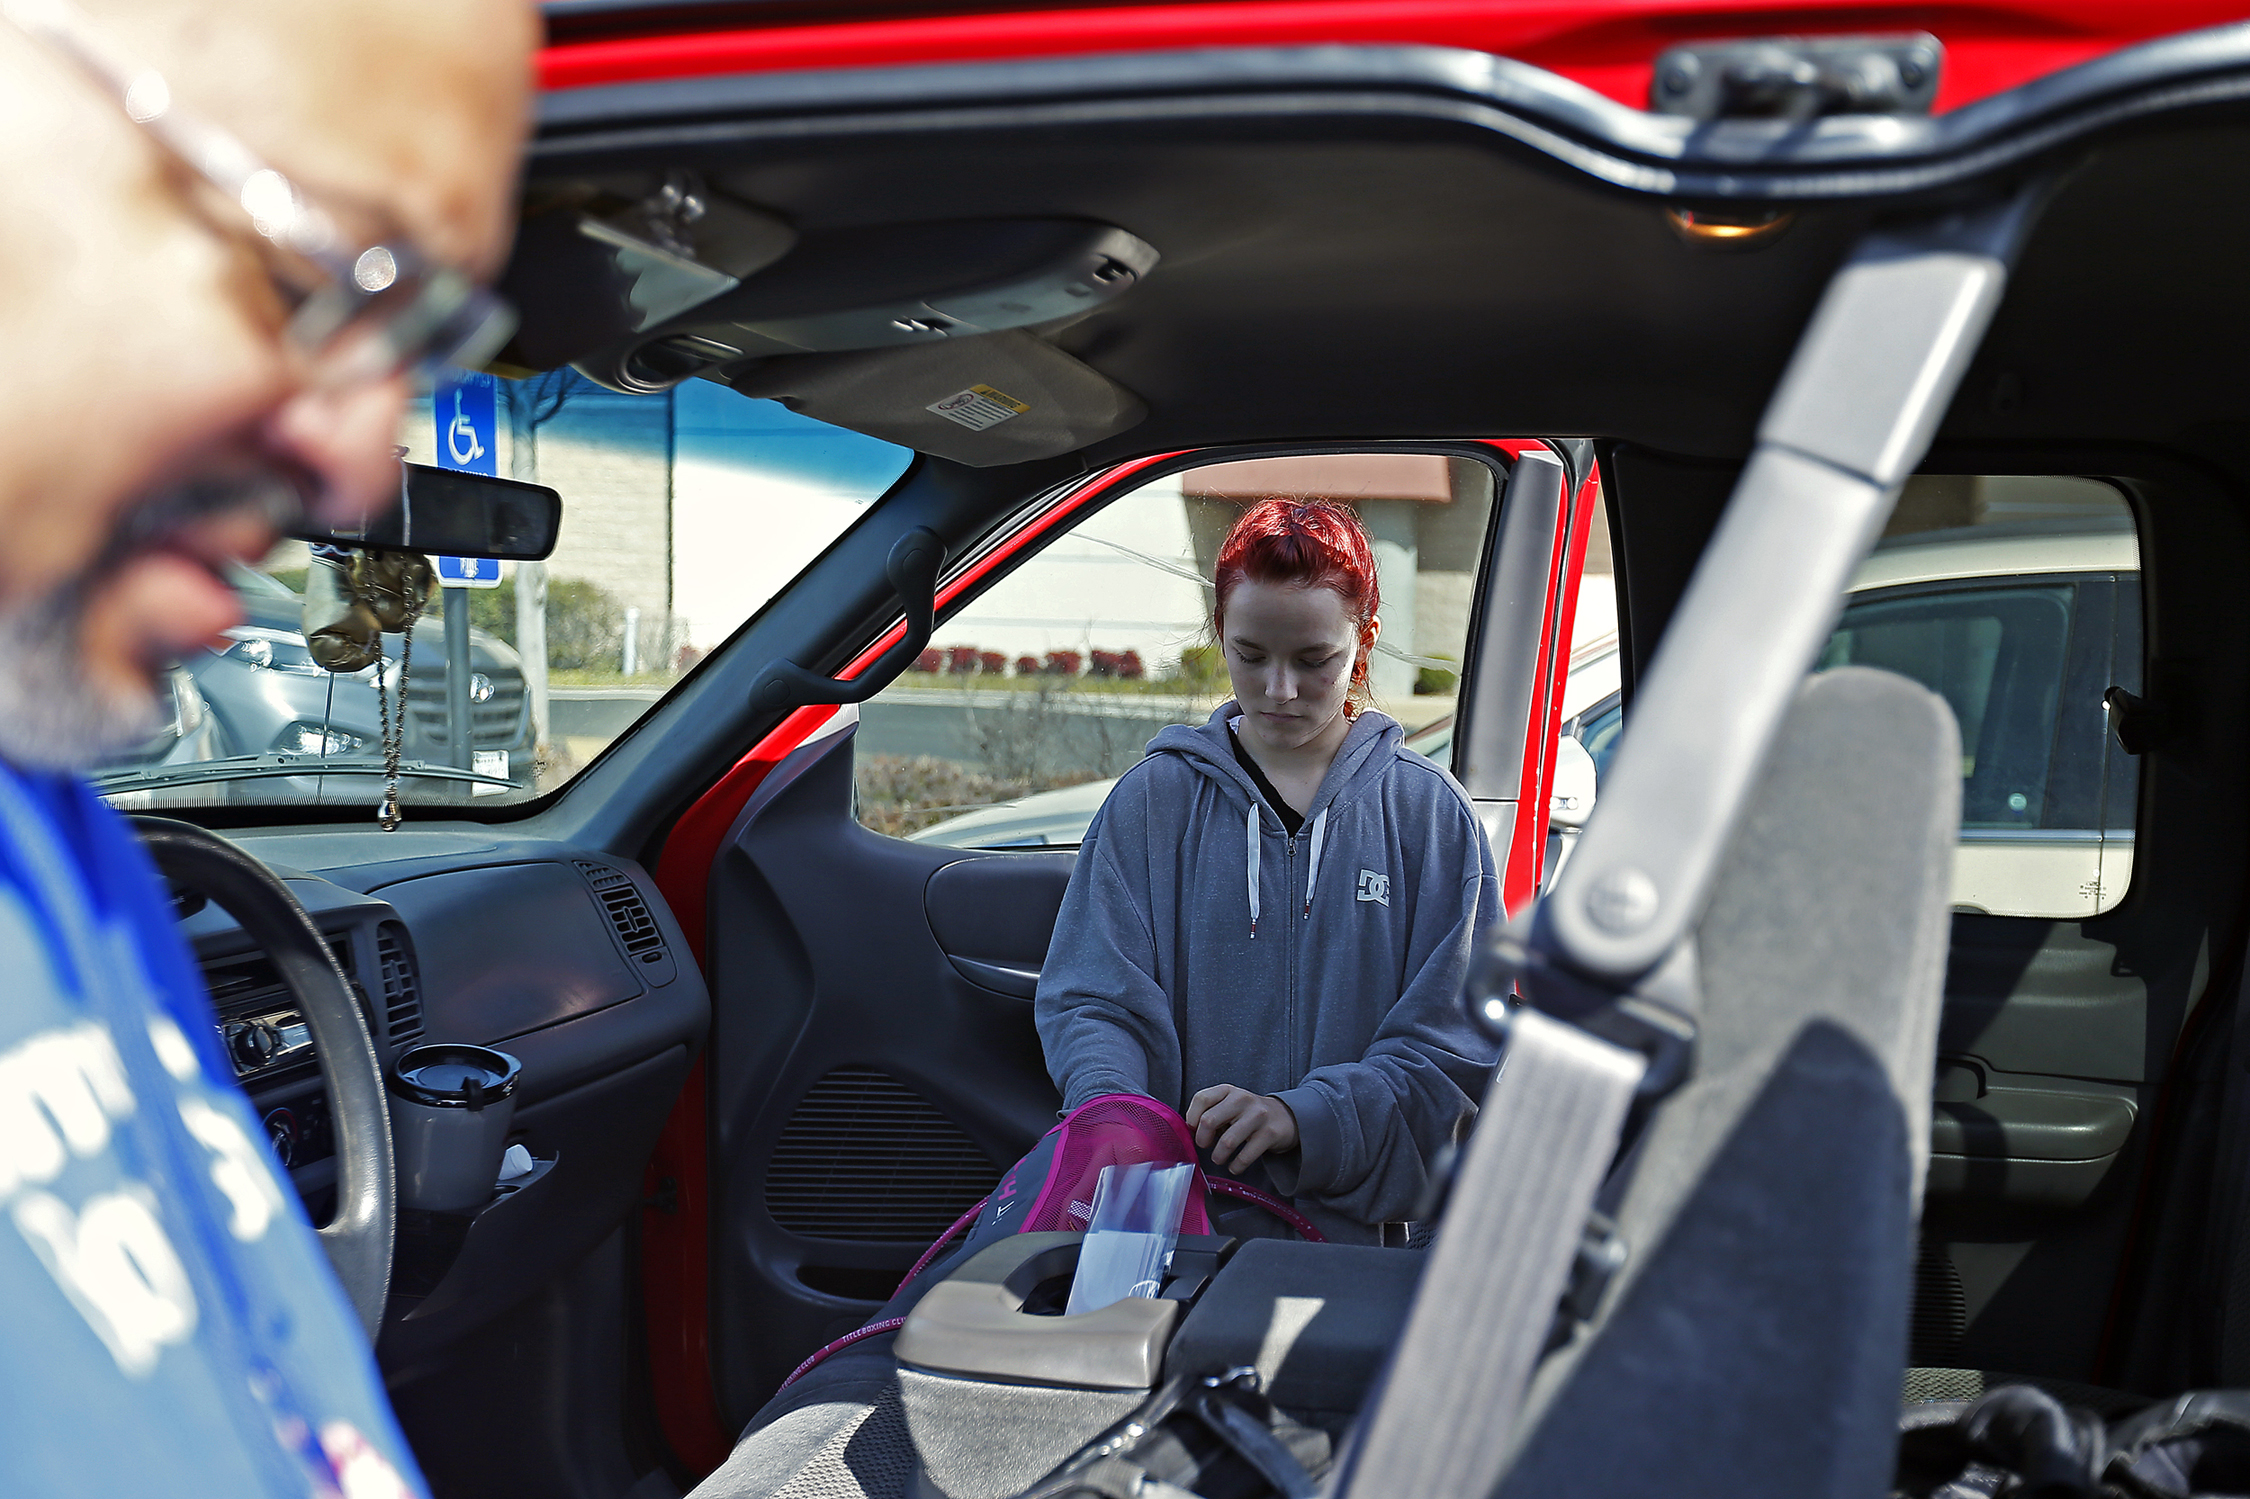 Shilyn Bradt grabs her backpack from coach Darrell Smith's truck during the first day of registration of the Sugar Bert Boxing Title Belt National Qualifier at the Branson Convention Center in Branson, Mo. on March 4, 2016. The tournament would reward its winners with a trip to the Sugar Bert Boxing Title Belt National Championship in November.